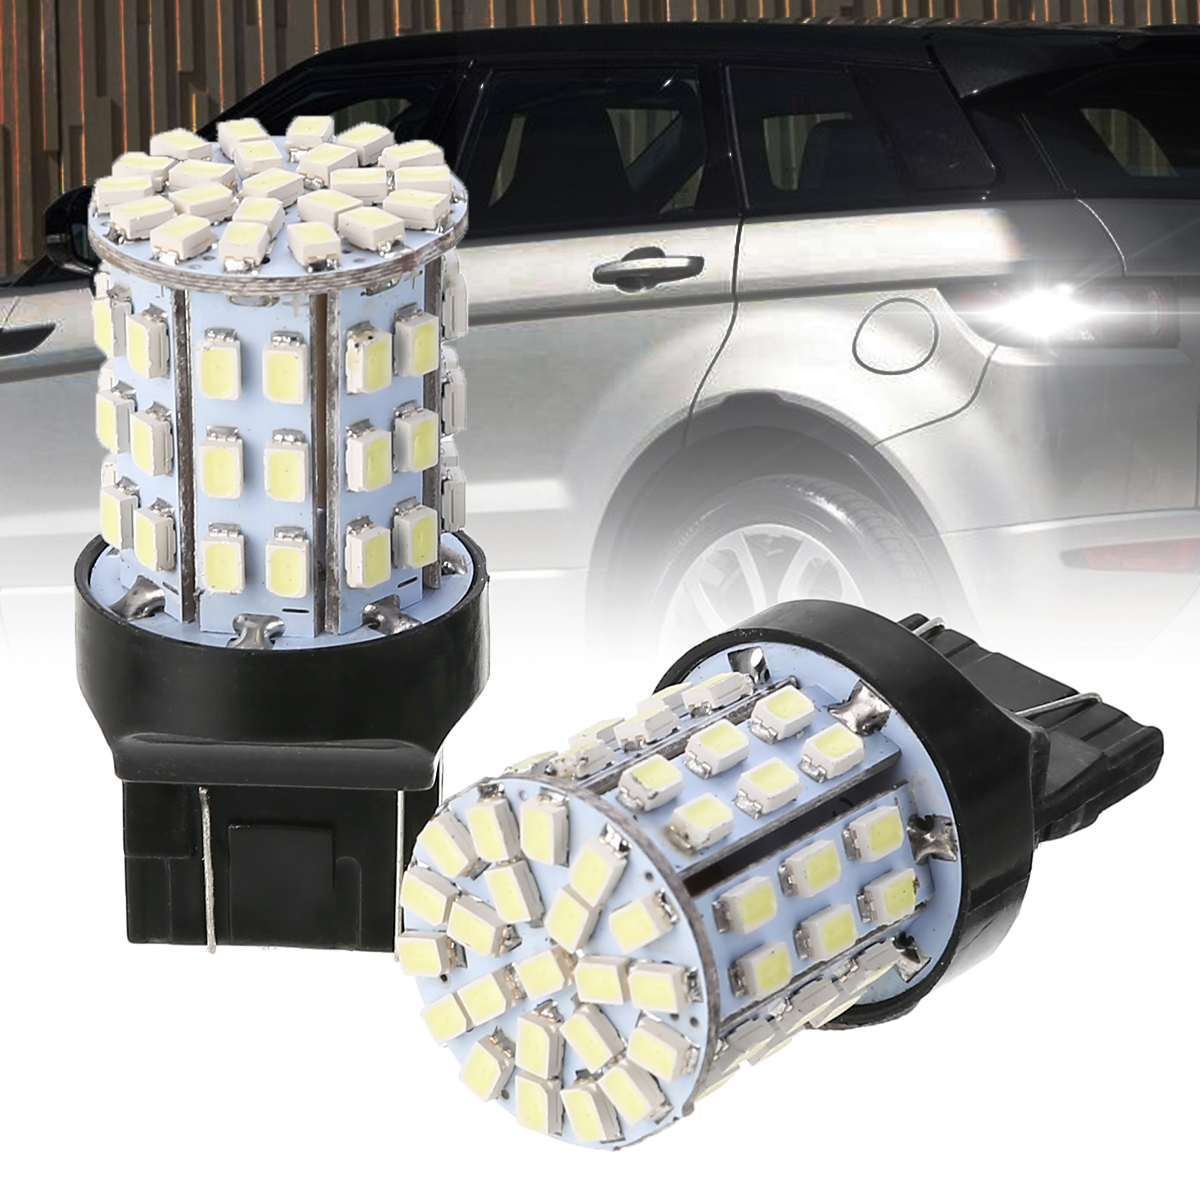 1 Pair W21W 64SMD Car <font><b>LED</b></font> Brake Light <font><b>T20</b></font> 7443 Backup Reserve Lights Stop <font><b>Rear</b></font> <font><b>Bulb</b></font> Auto Turn Signal Lamp image